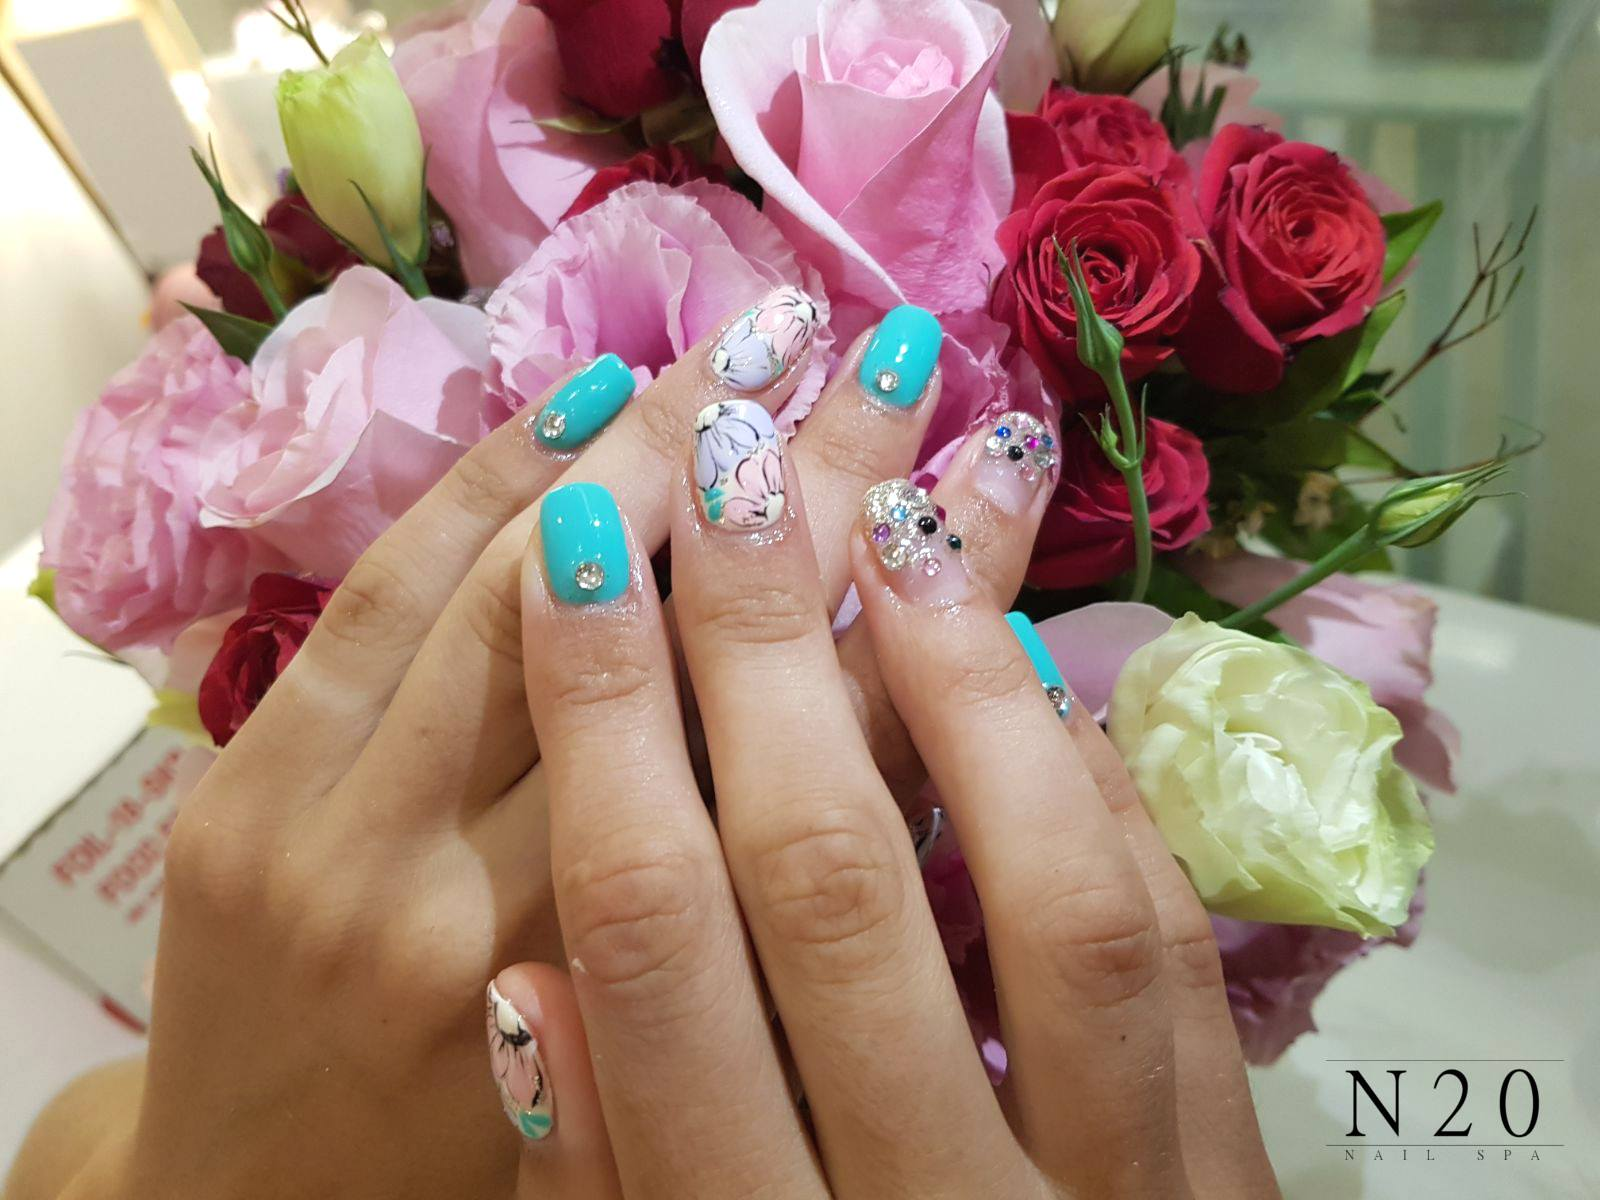 Blue pink flora manicure nail art with studs - N20 Nail Spa